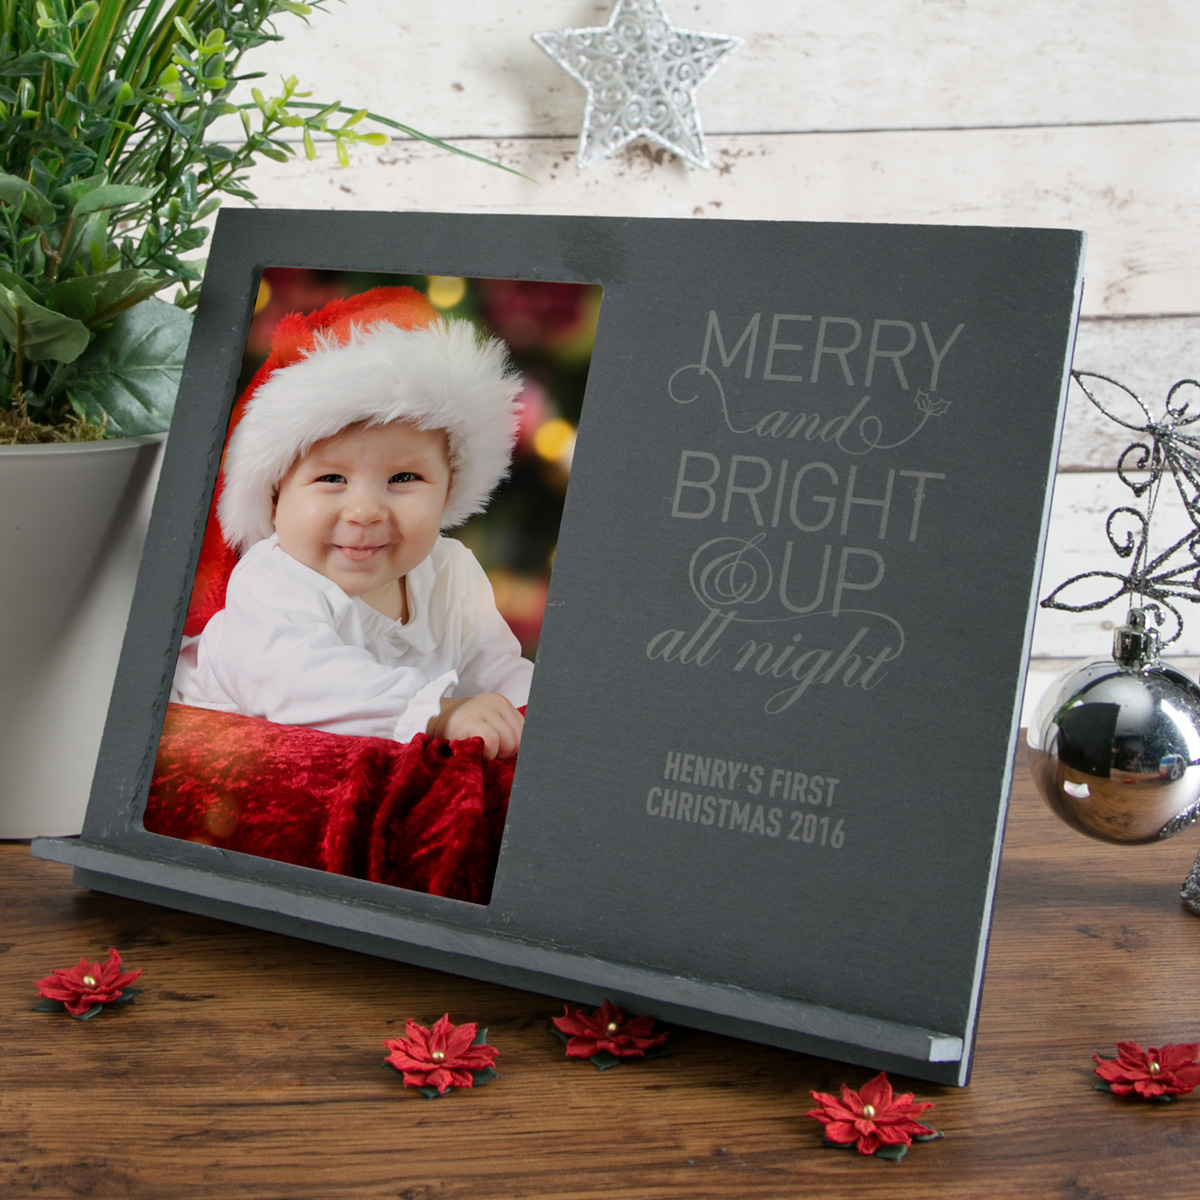 Image of Engraved Slate Chalk Board Photo Frame - Merry And Bright & Up All Night